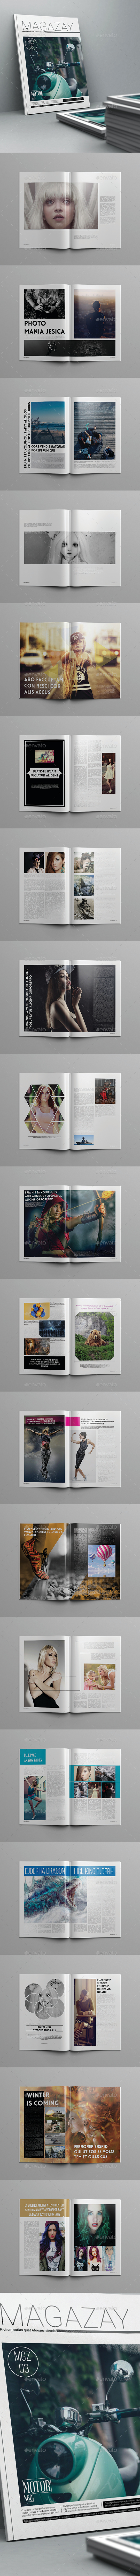 Magazine Template 40 Pages - Magazines Print Templates